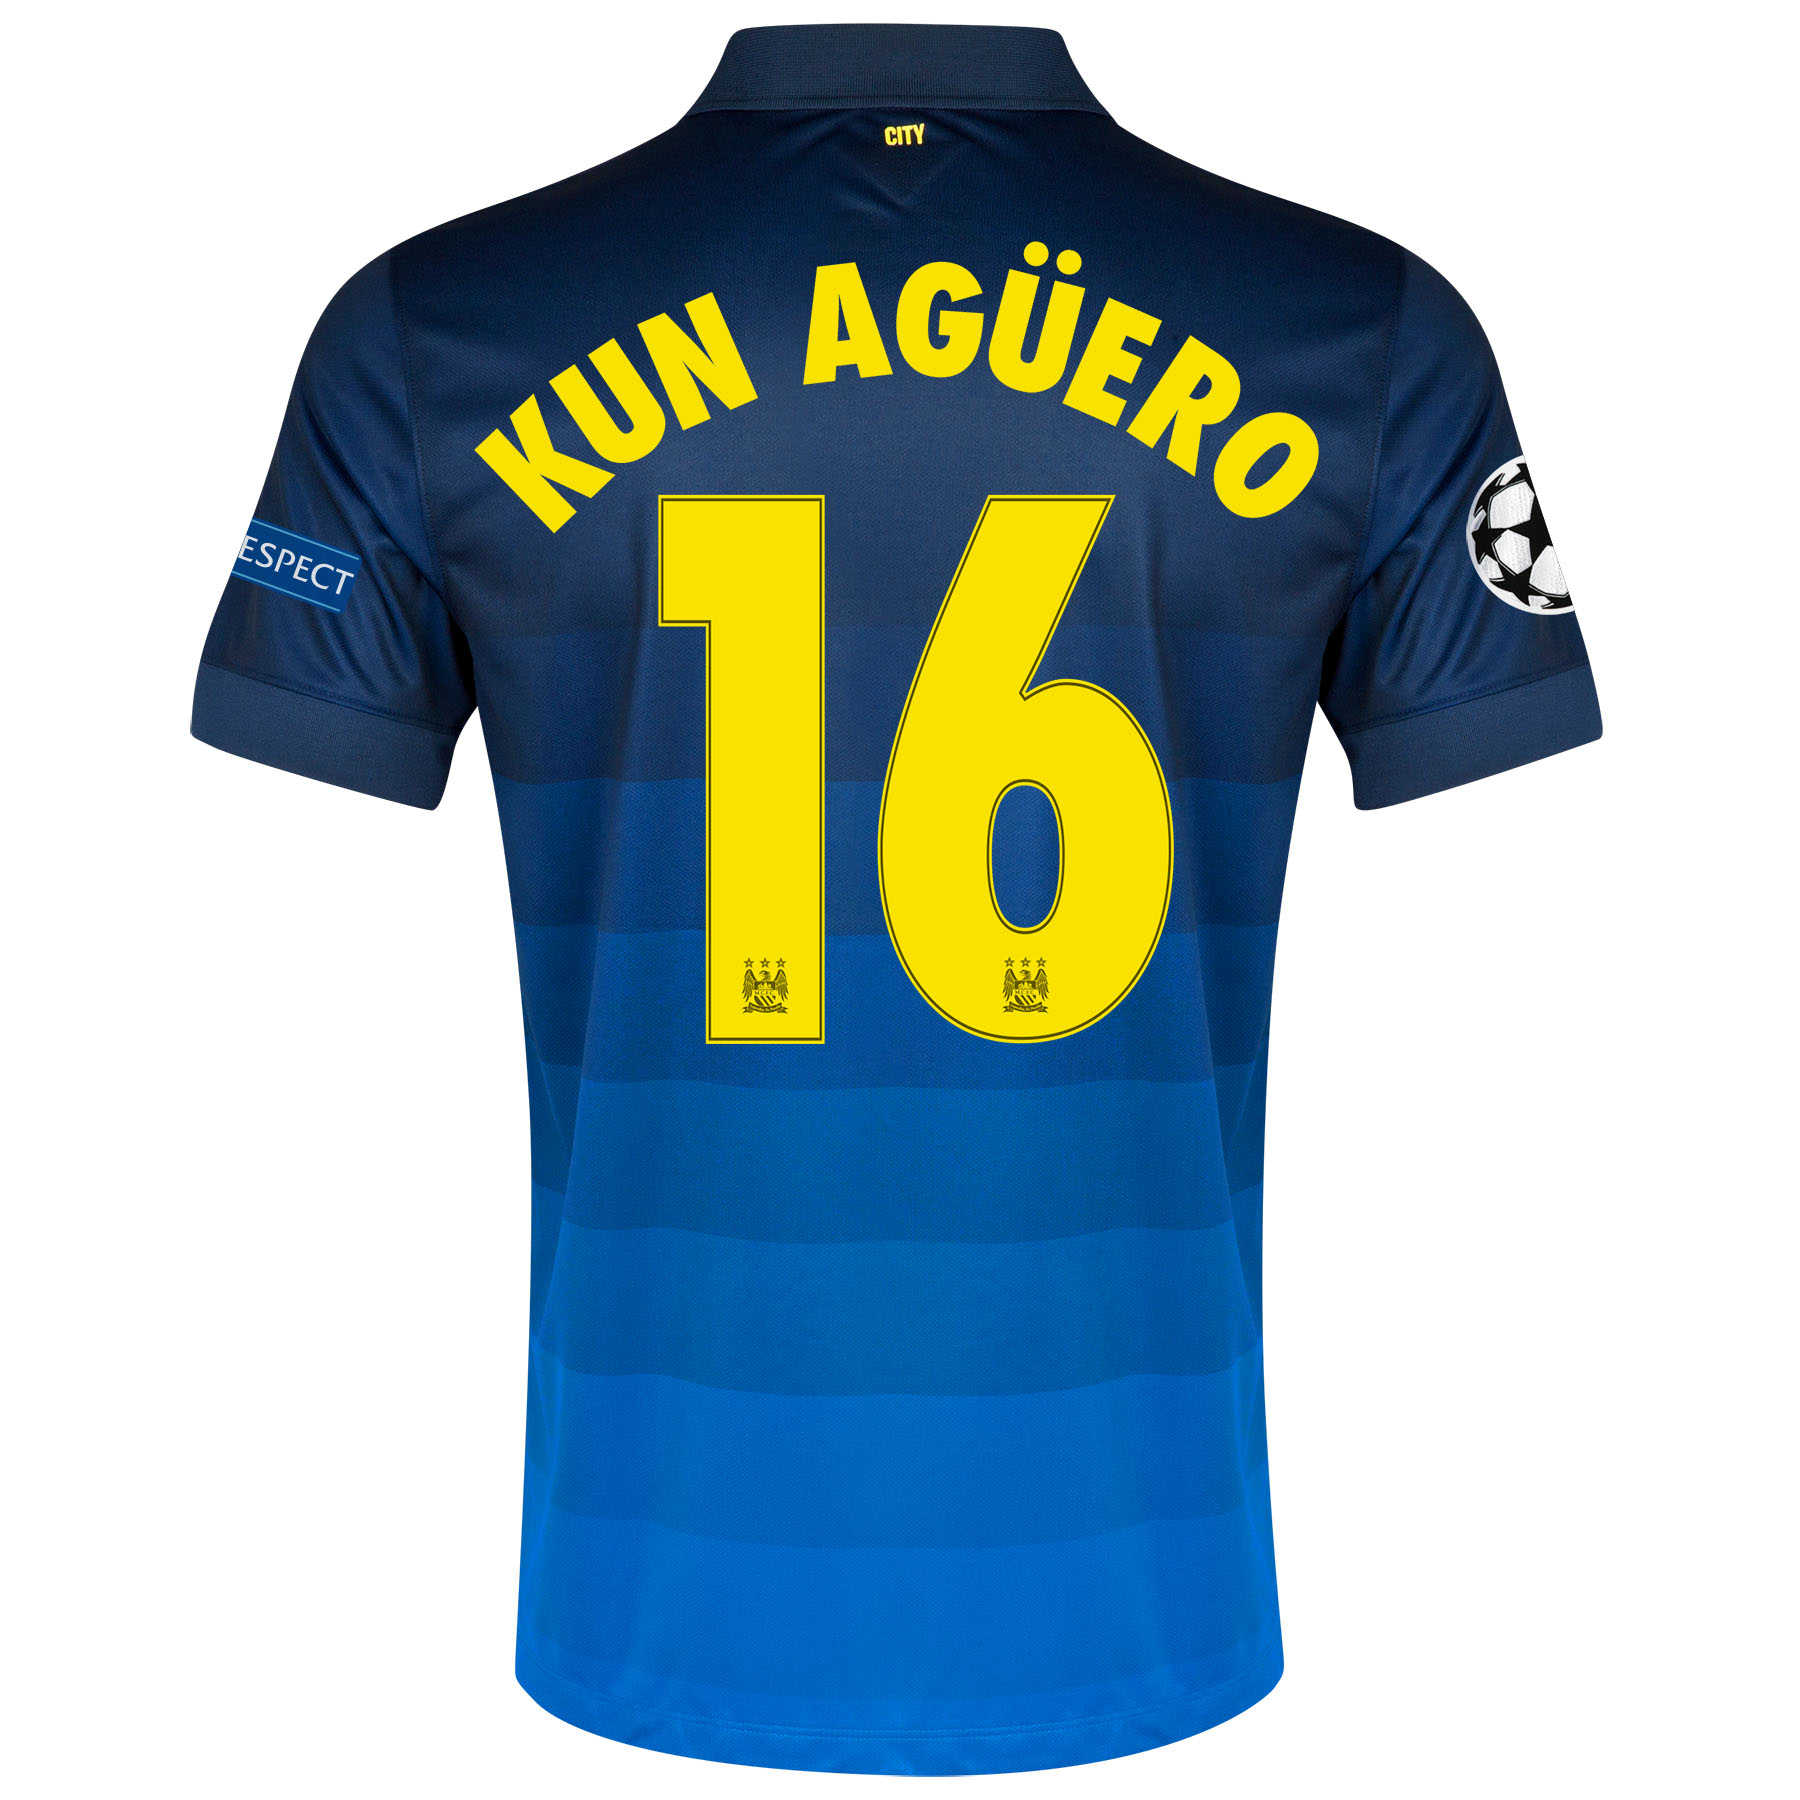 Manchester City UEFA Champions League Away Shirt 2014/15 with Kun Agüero  16 printing